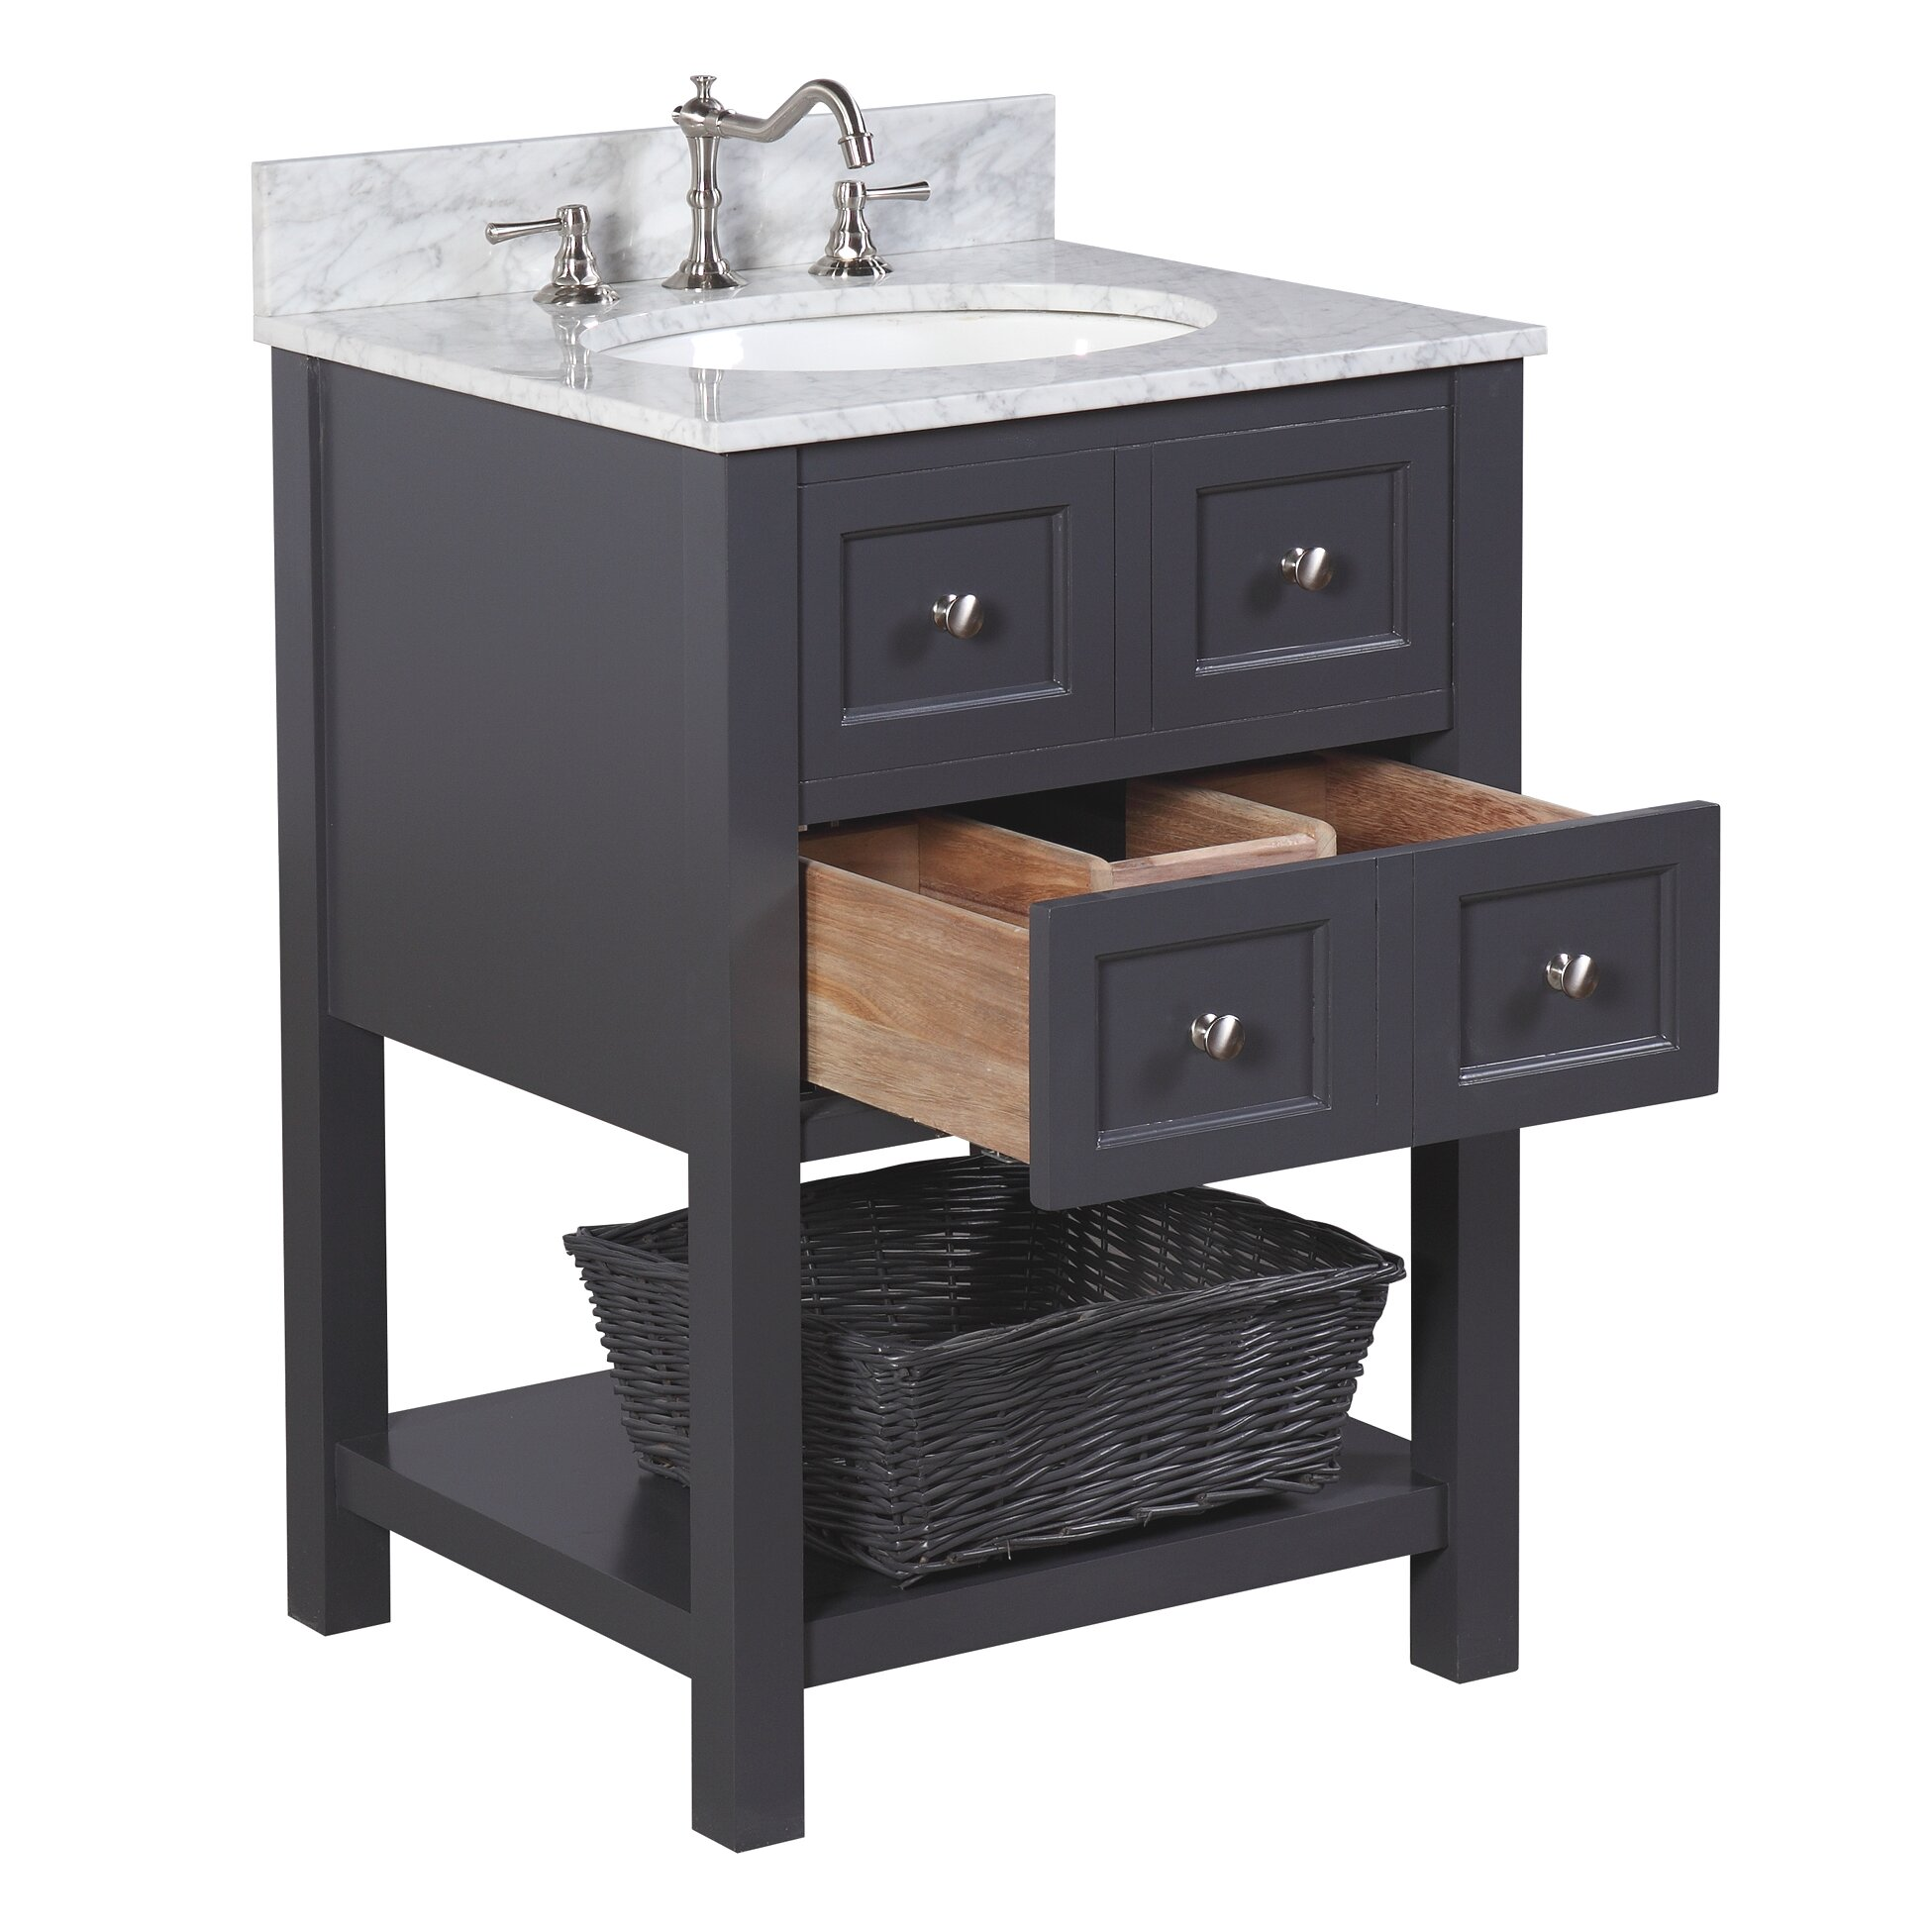 Kbc new yorker 24 single bathroom vanity set reviews for Single bathroom vanity